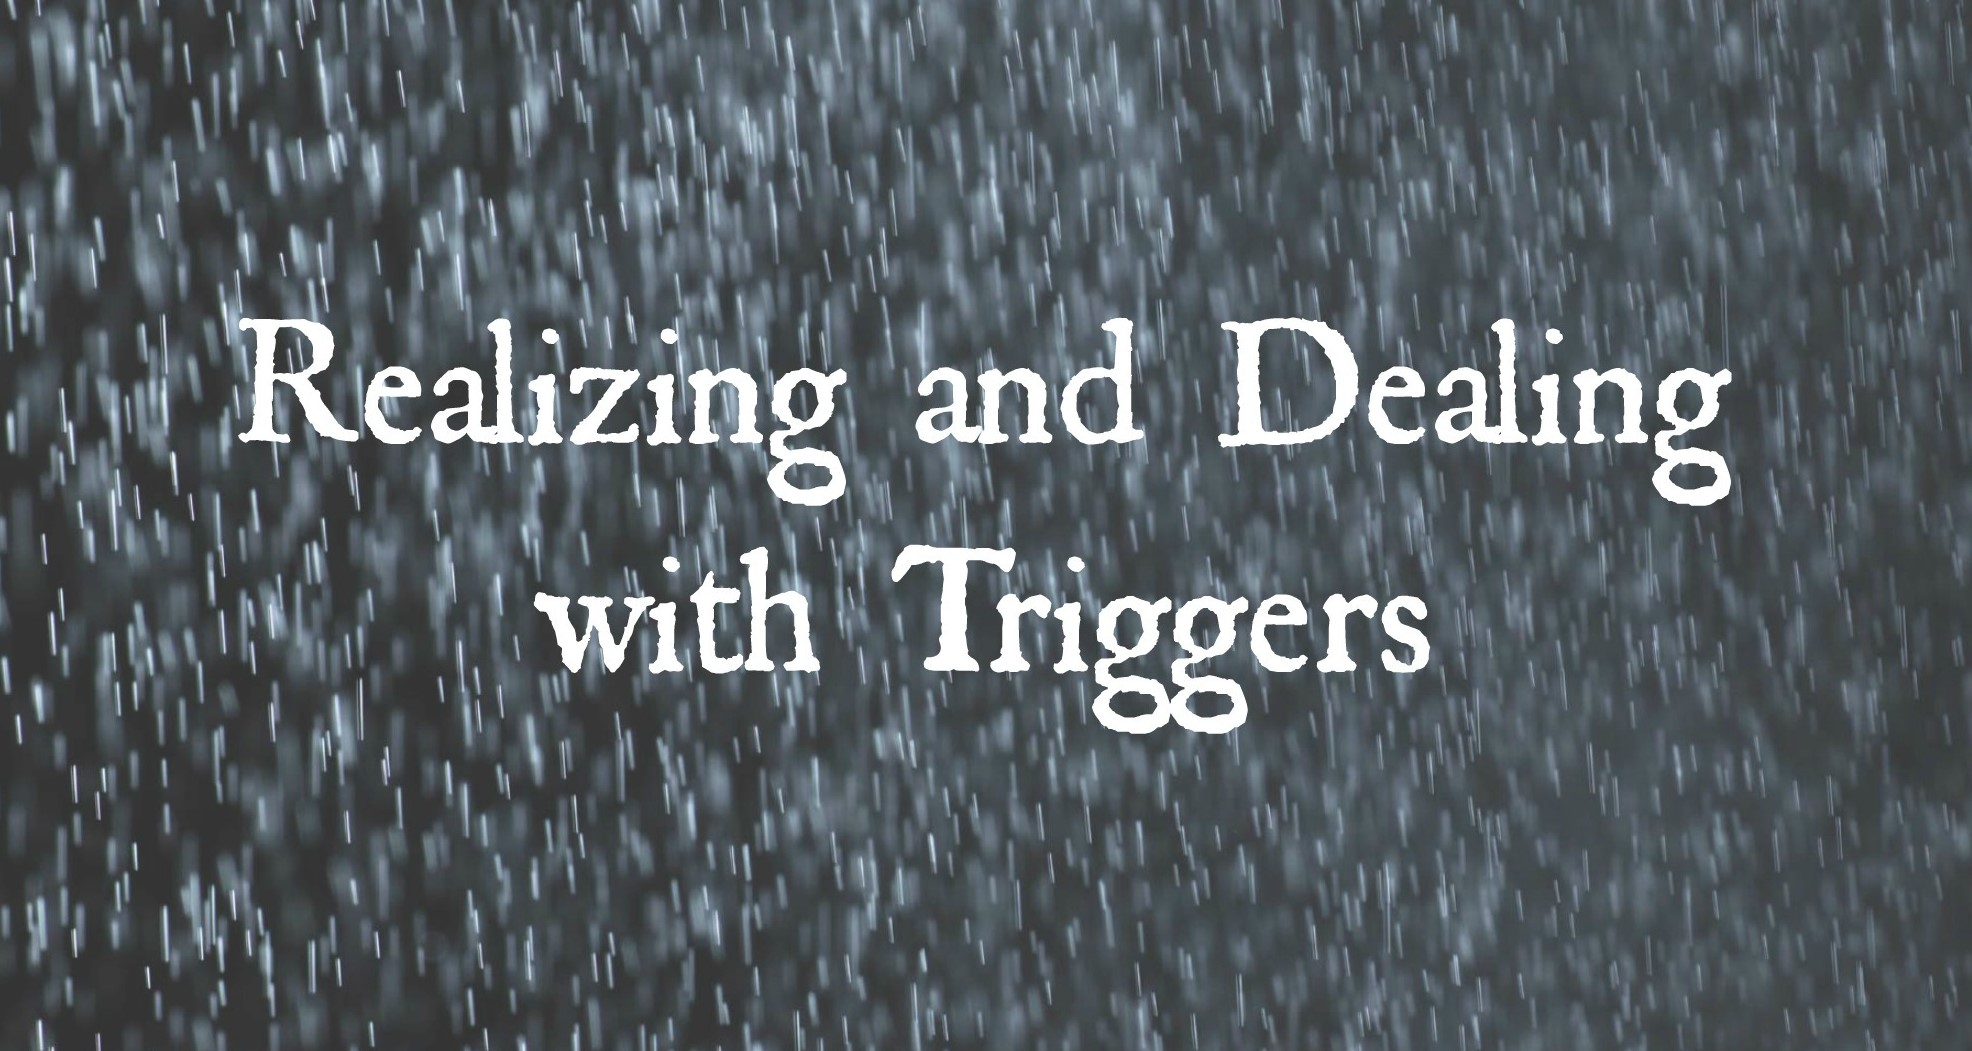 realizing-and-dealing-with-triggers1[1] (2)